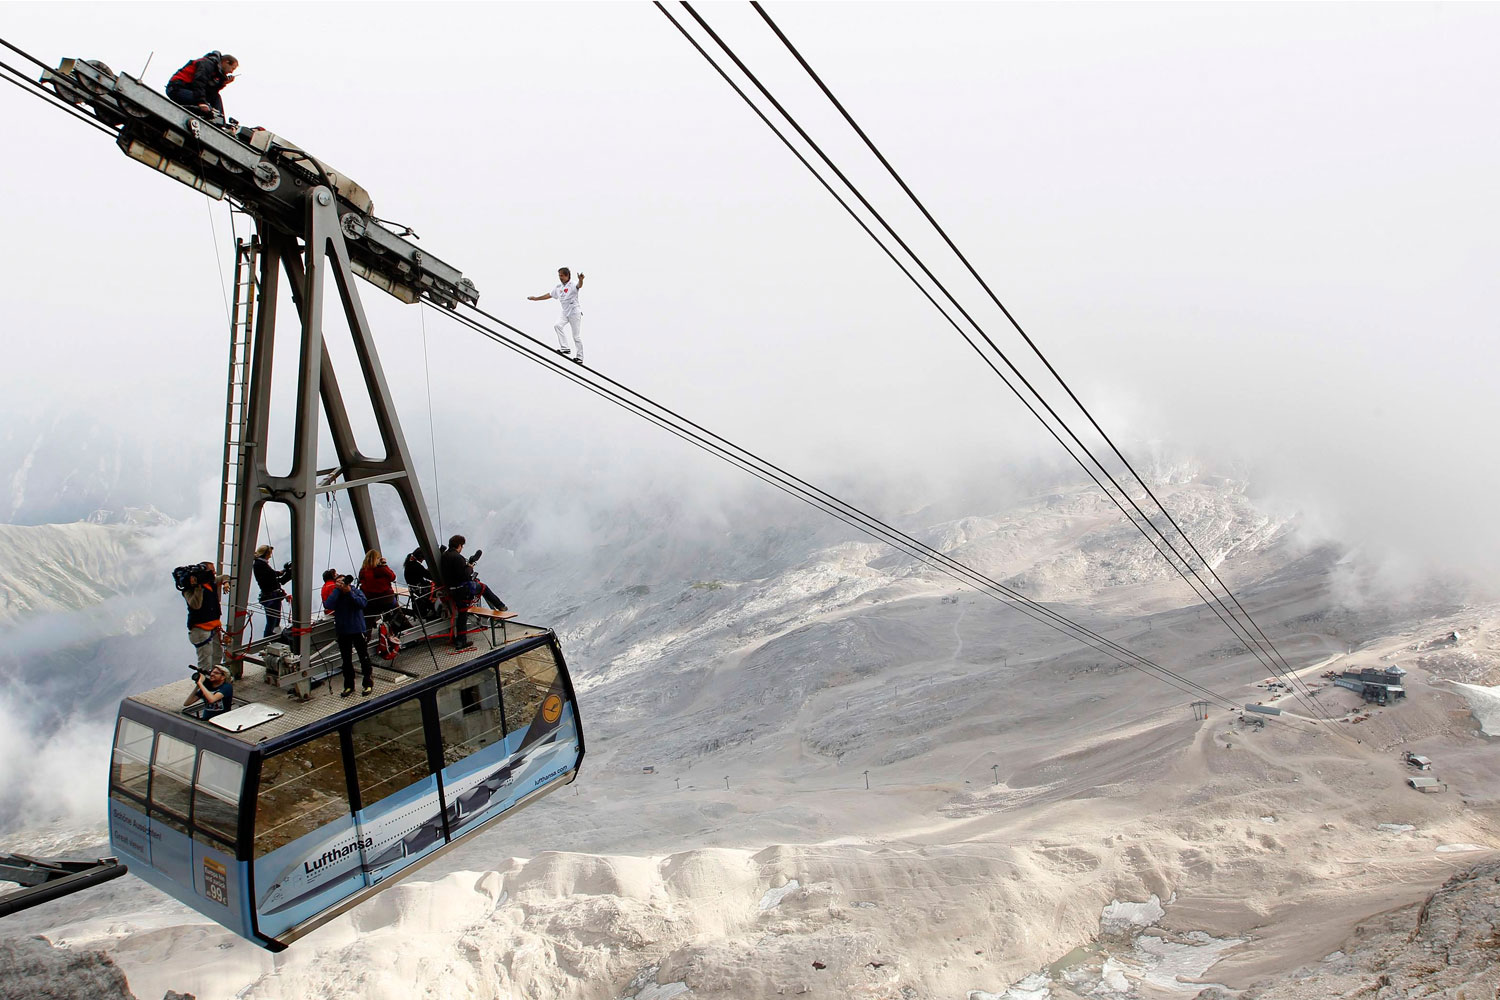 August 20, 2011. Freddy Nock of Switzerland balances on the ropeway of a cable car leading up Germany's 9,718-ft. Zugspitze, near the resort of Garmisch-Partenkirchen. Nock walked the 3,264-ft. cable, breaking his own worldrecord.